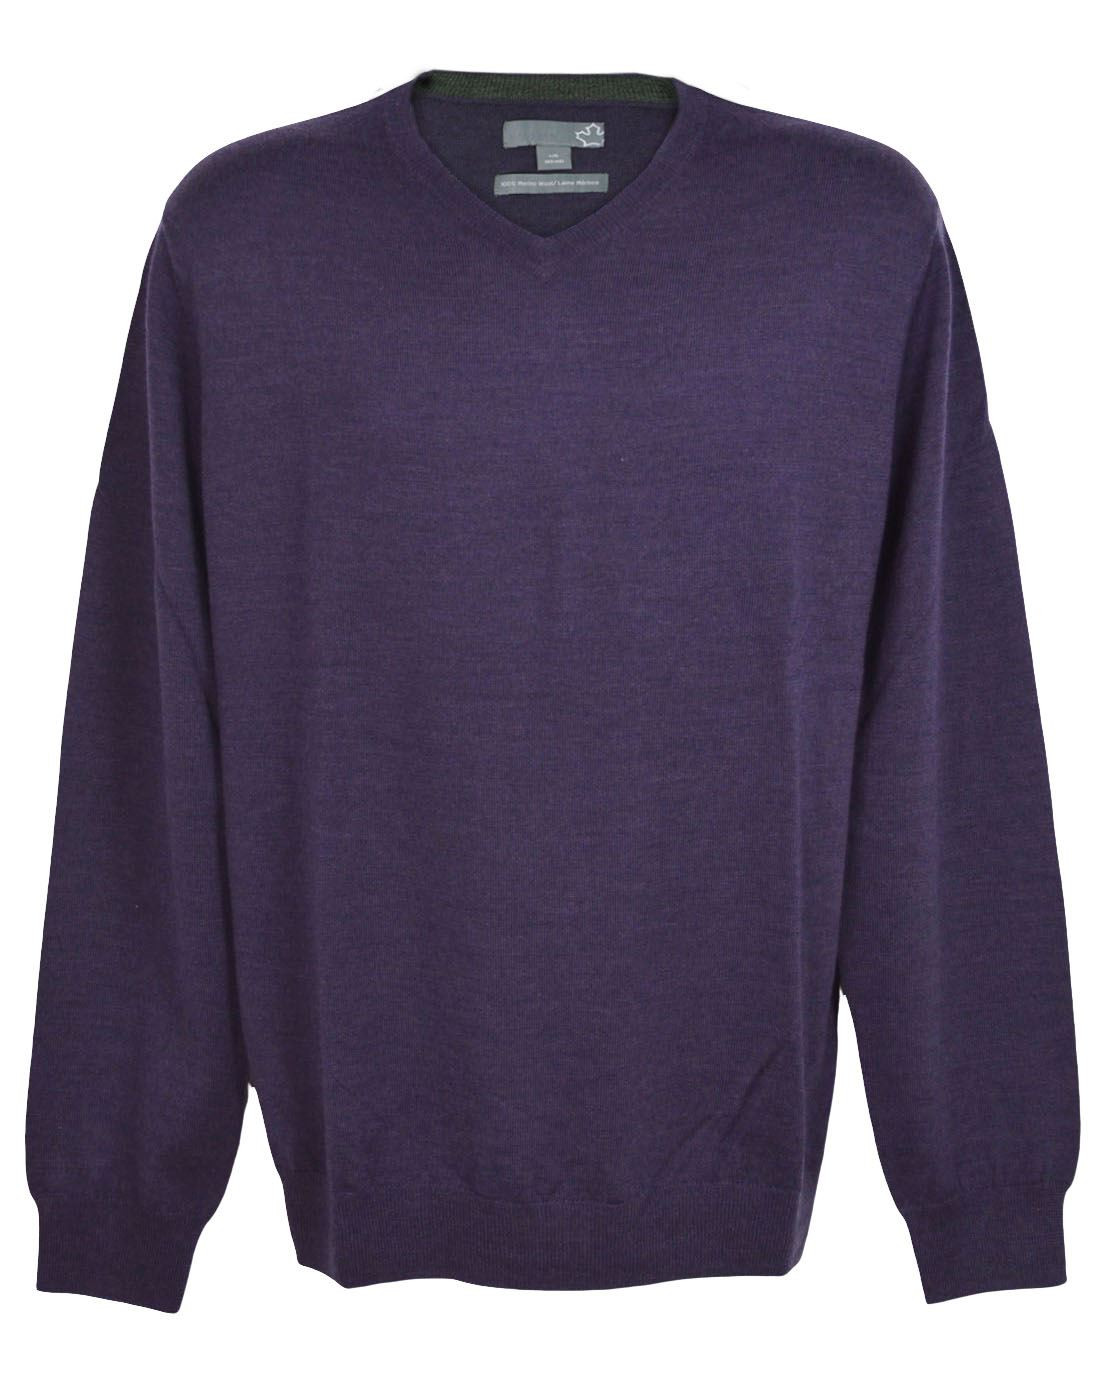 SEARS-Mens-Pure-Merino-Wool-V-Neck-Jumper-Pullover-Super-Quality thumbnail 11